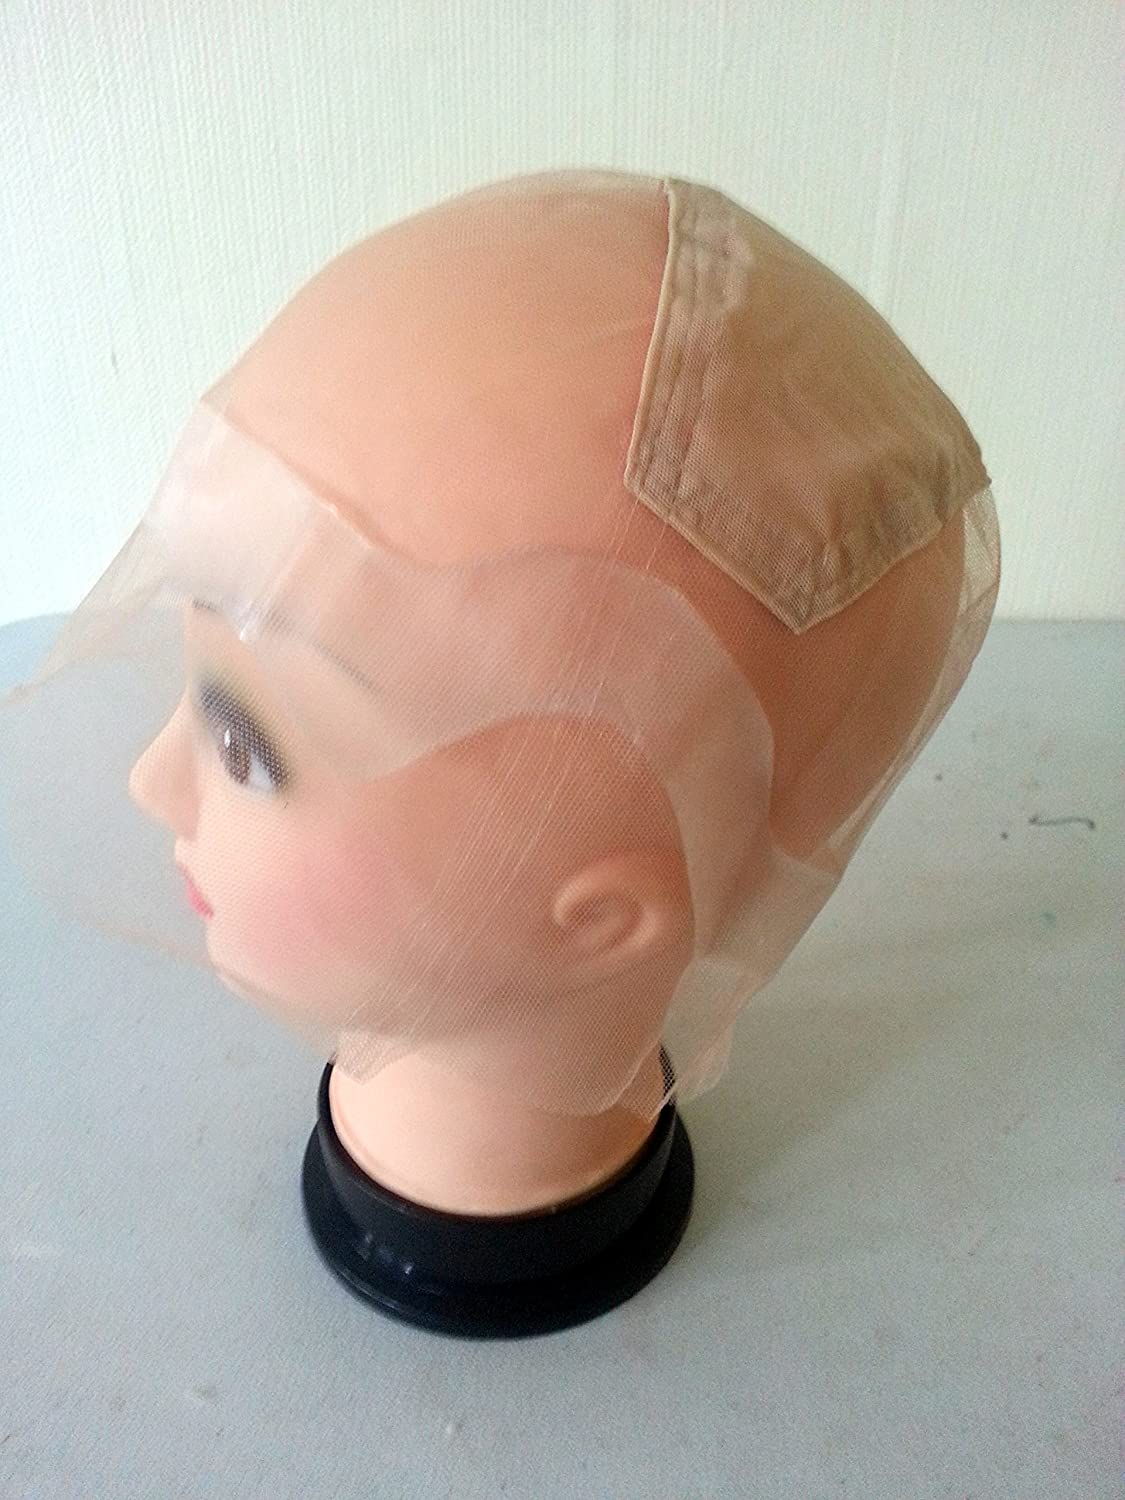 1 Hair Loss Wig Cap. Thin Skin Perimeter Wig Cap. Ventilating Wig Base with thin skin round the edges